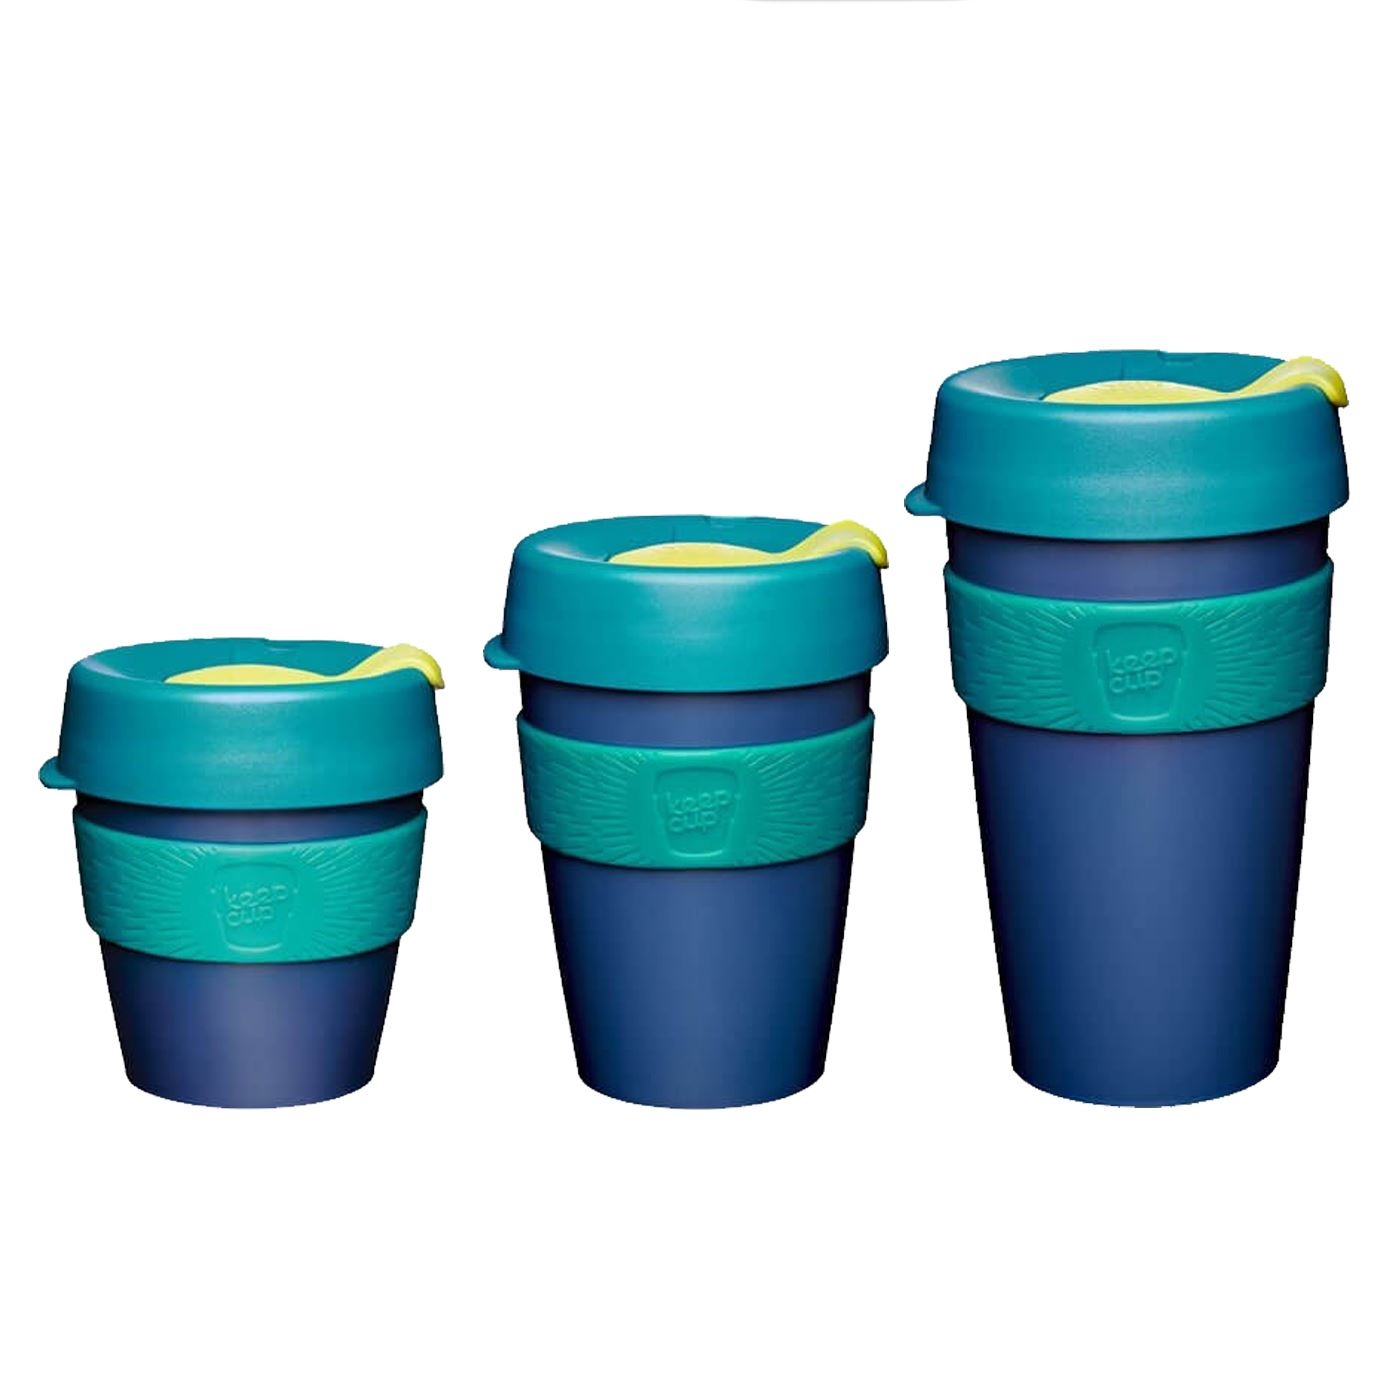 Original Coffee Mugs New Keepcup Changemakers Range Original Reusable Coffee